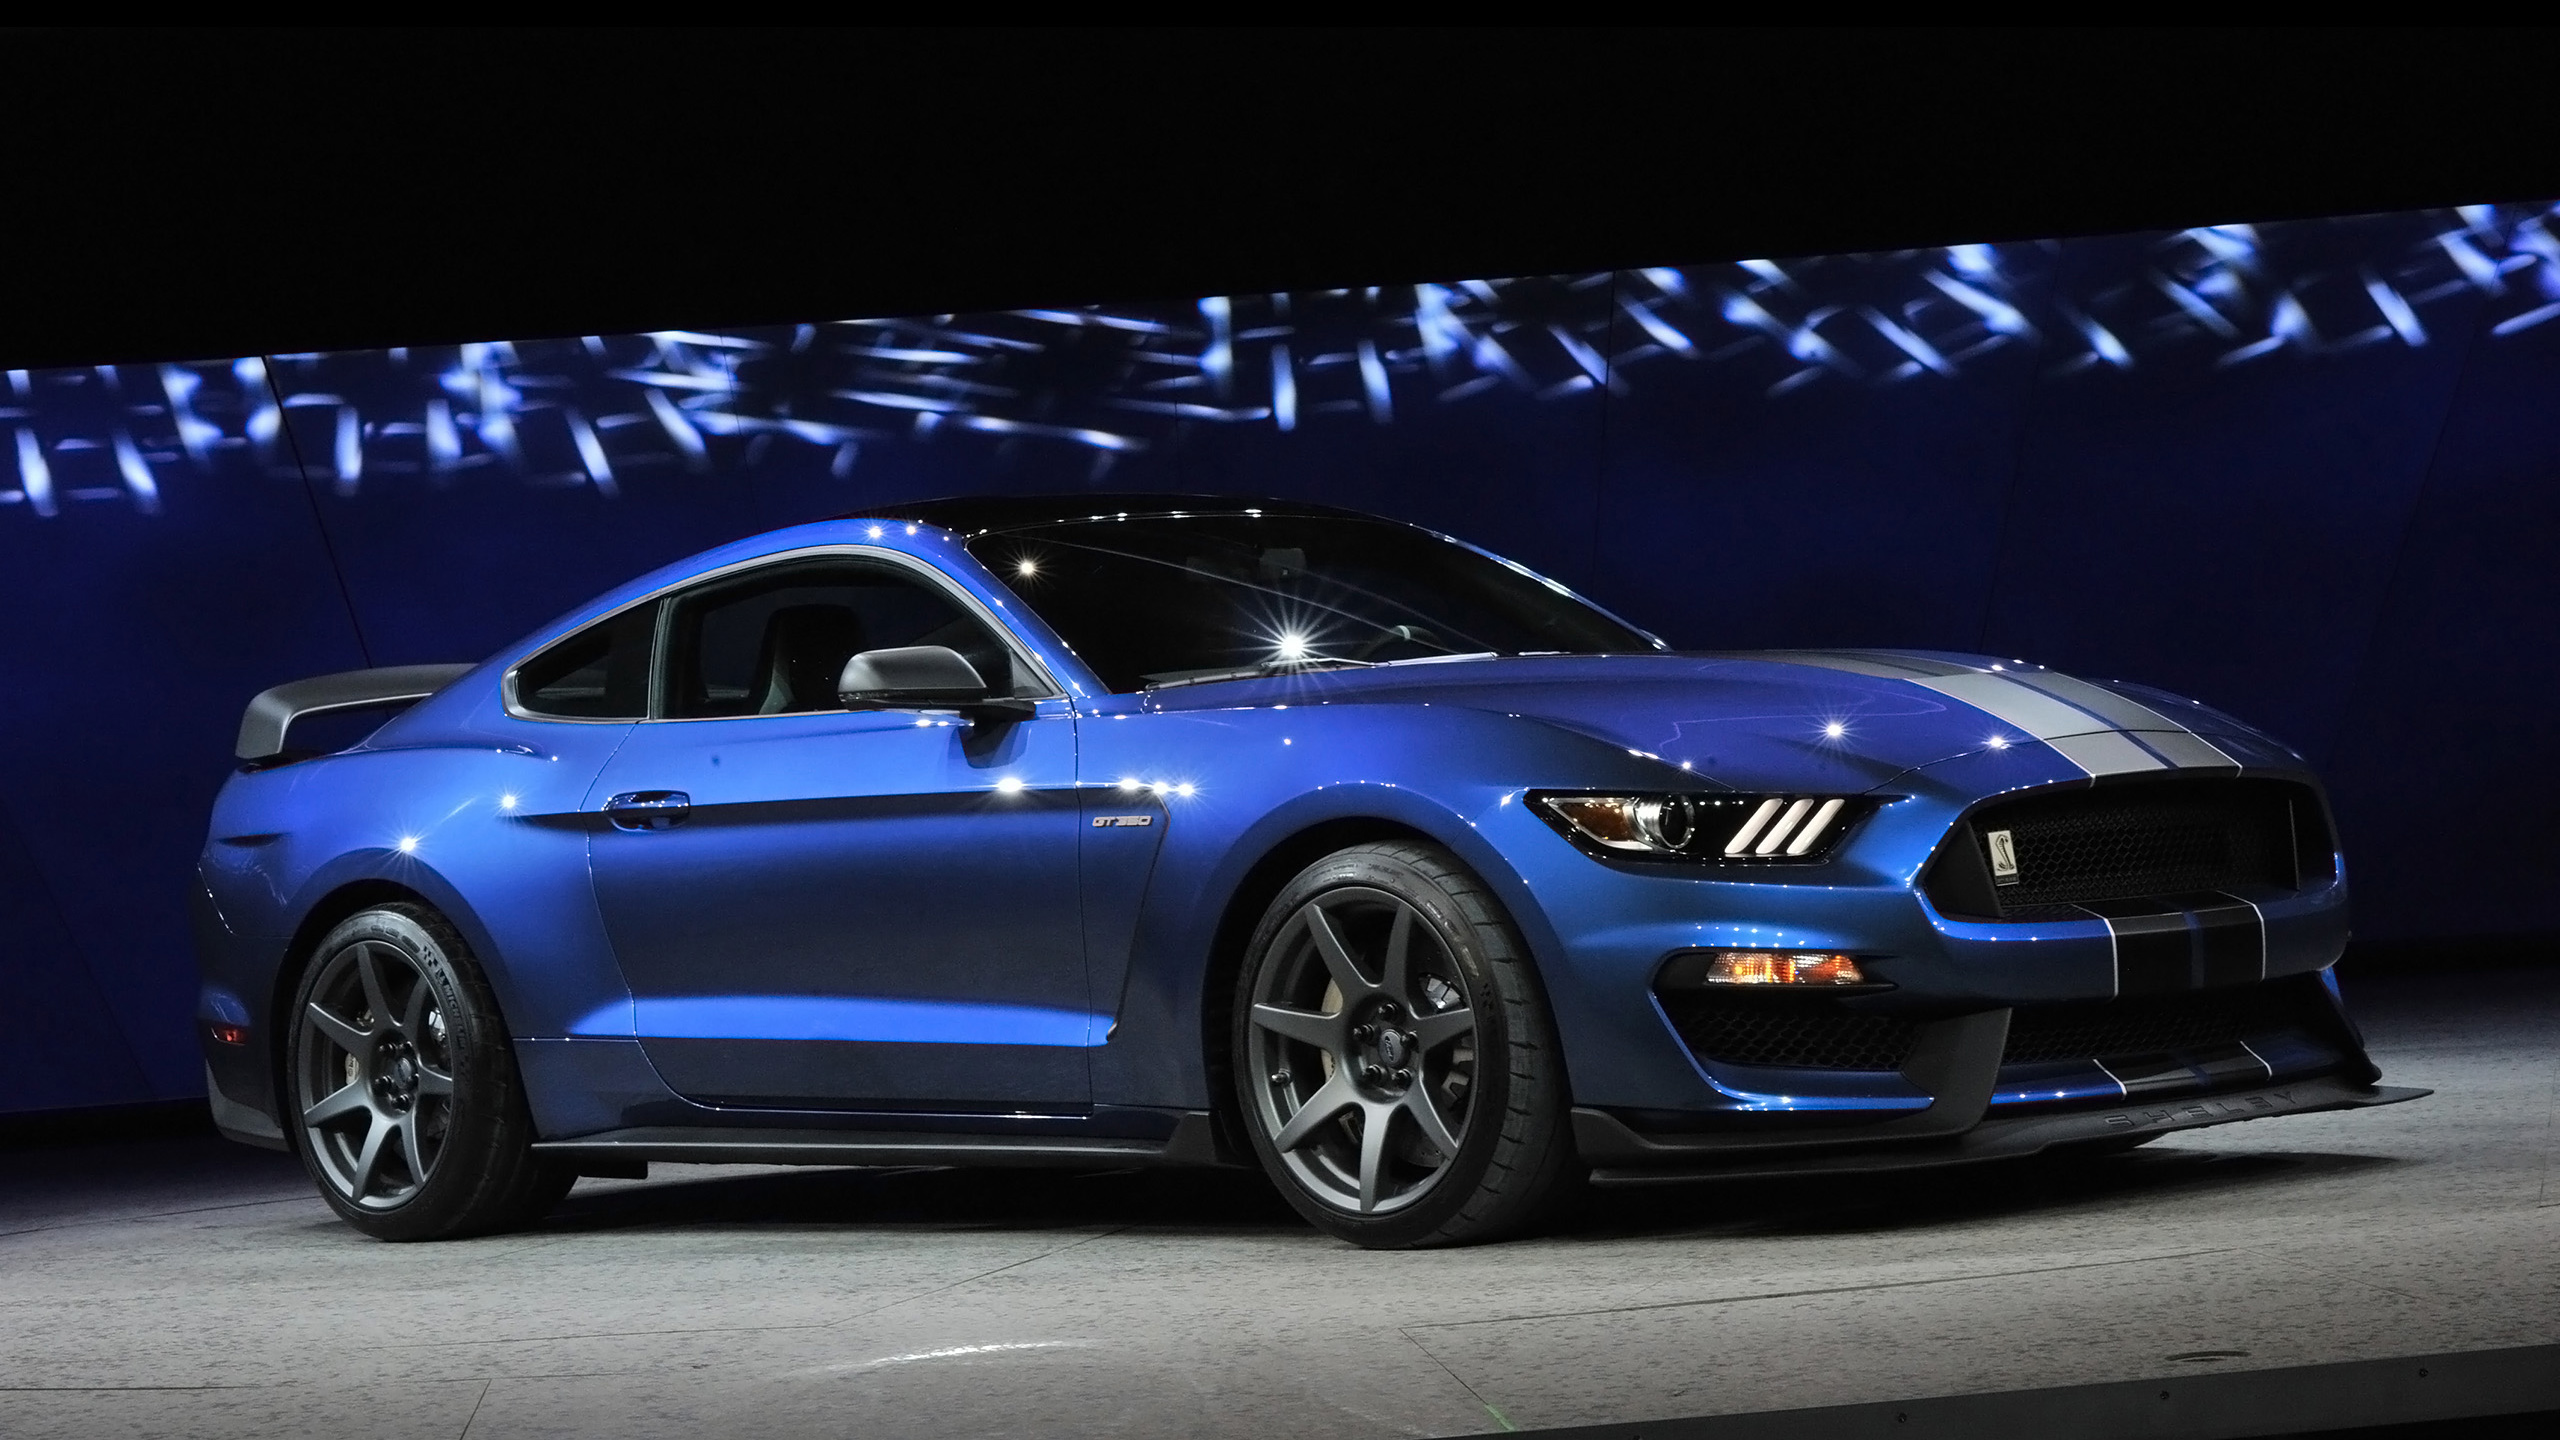 2016 ford shelby gt350r mustang 2 wallpaper hd car. Black Bedroom Furniture Sets. Home Design Ideas